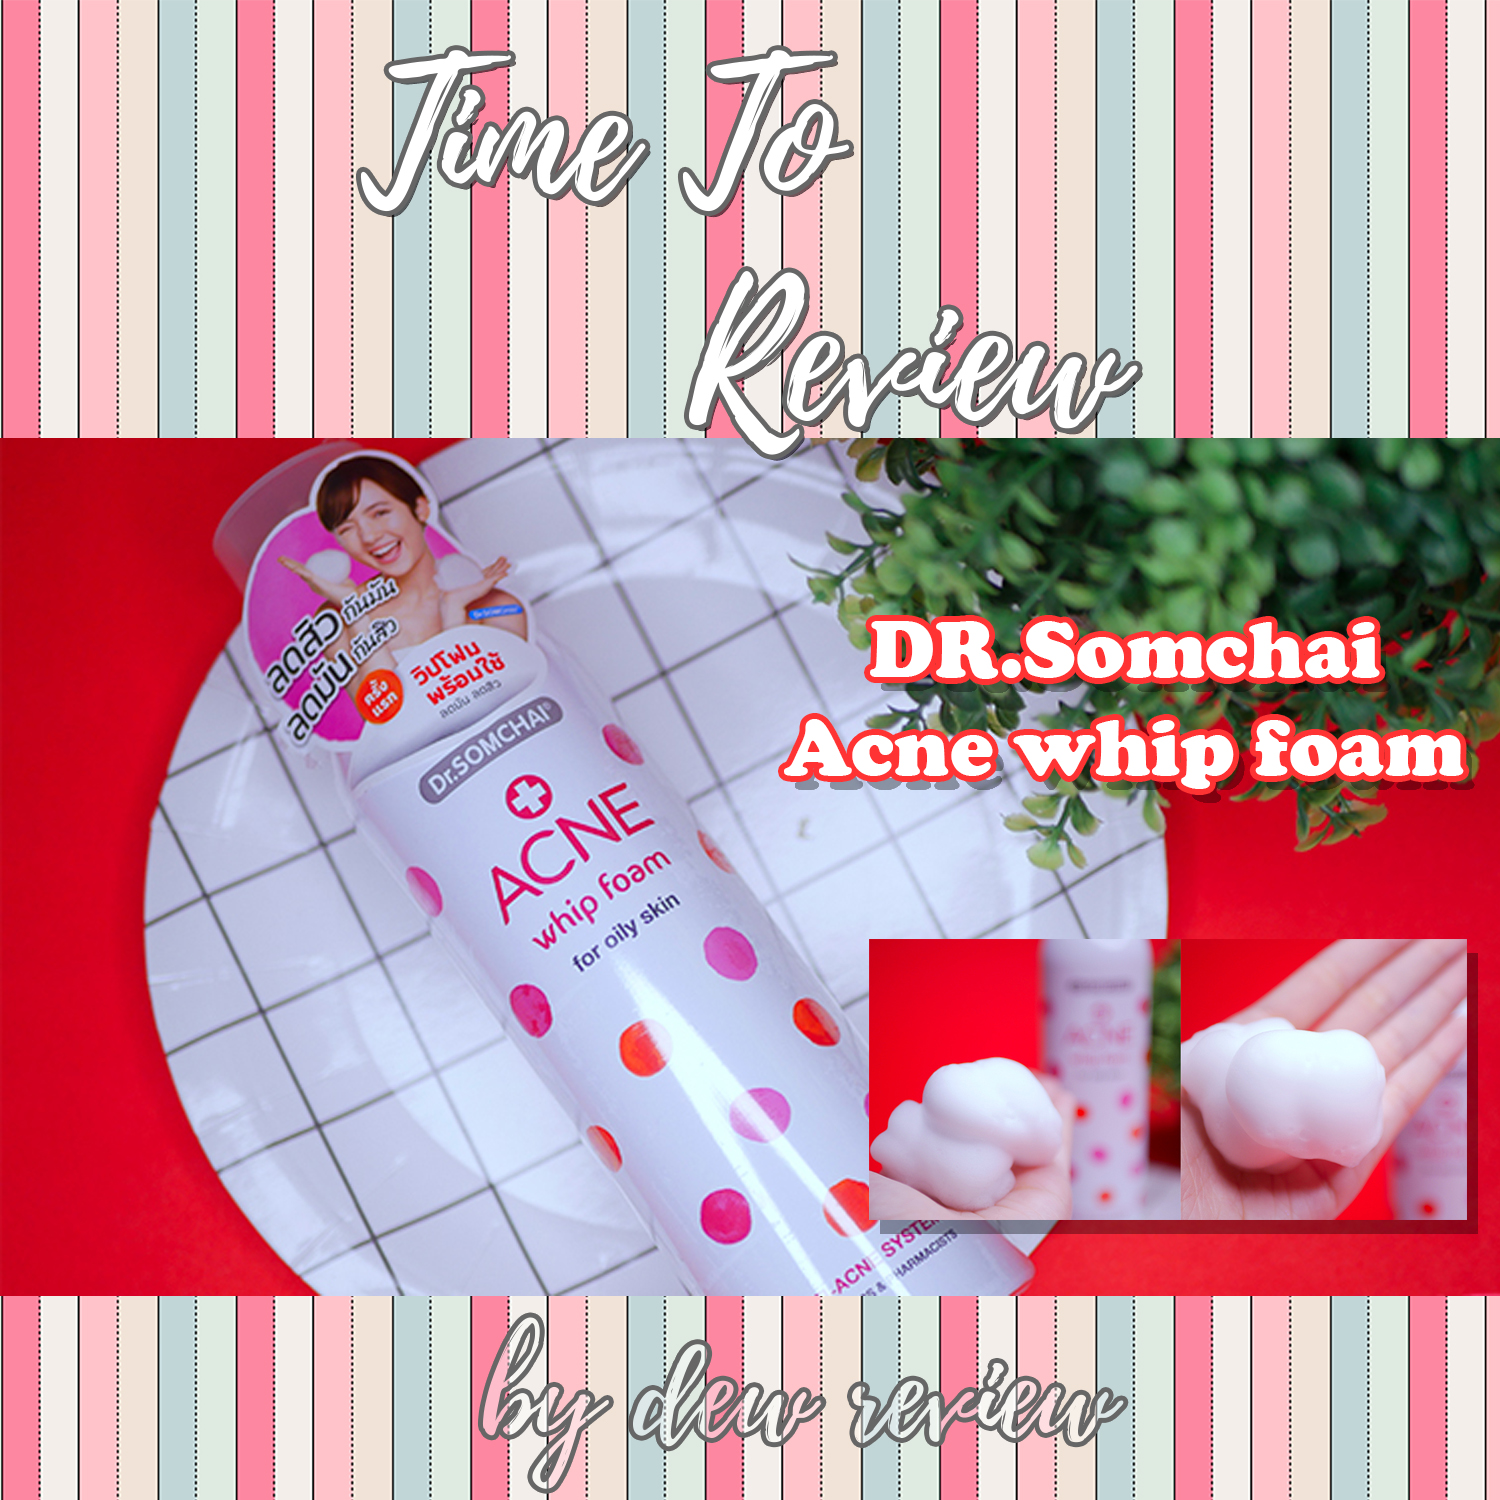 [Review] Dr.somchai acne whip foam ค่า ^^